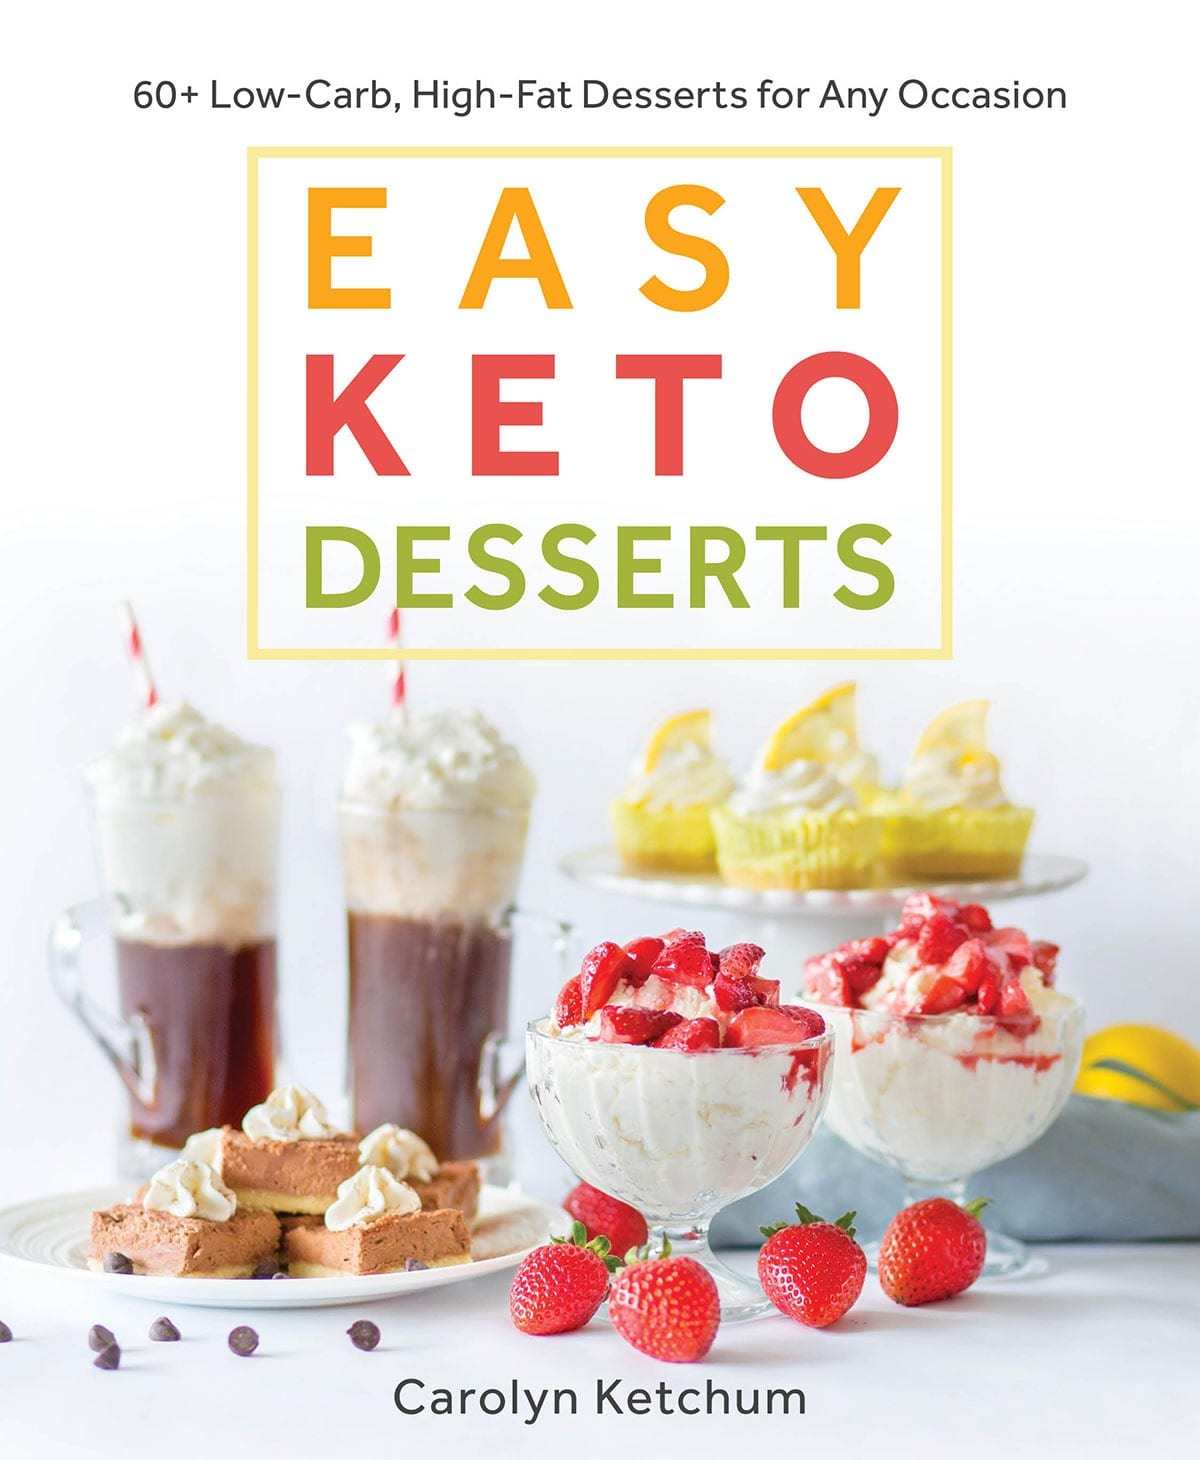 Easy Keto Desserts Cookbook Cover